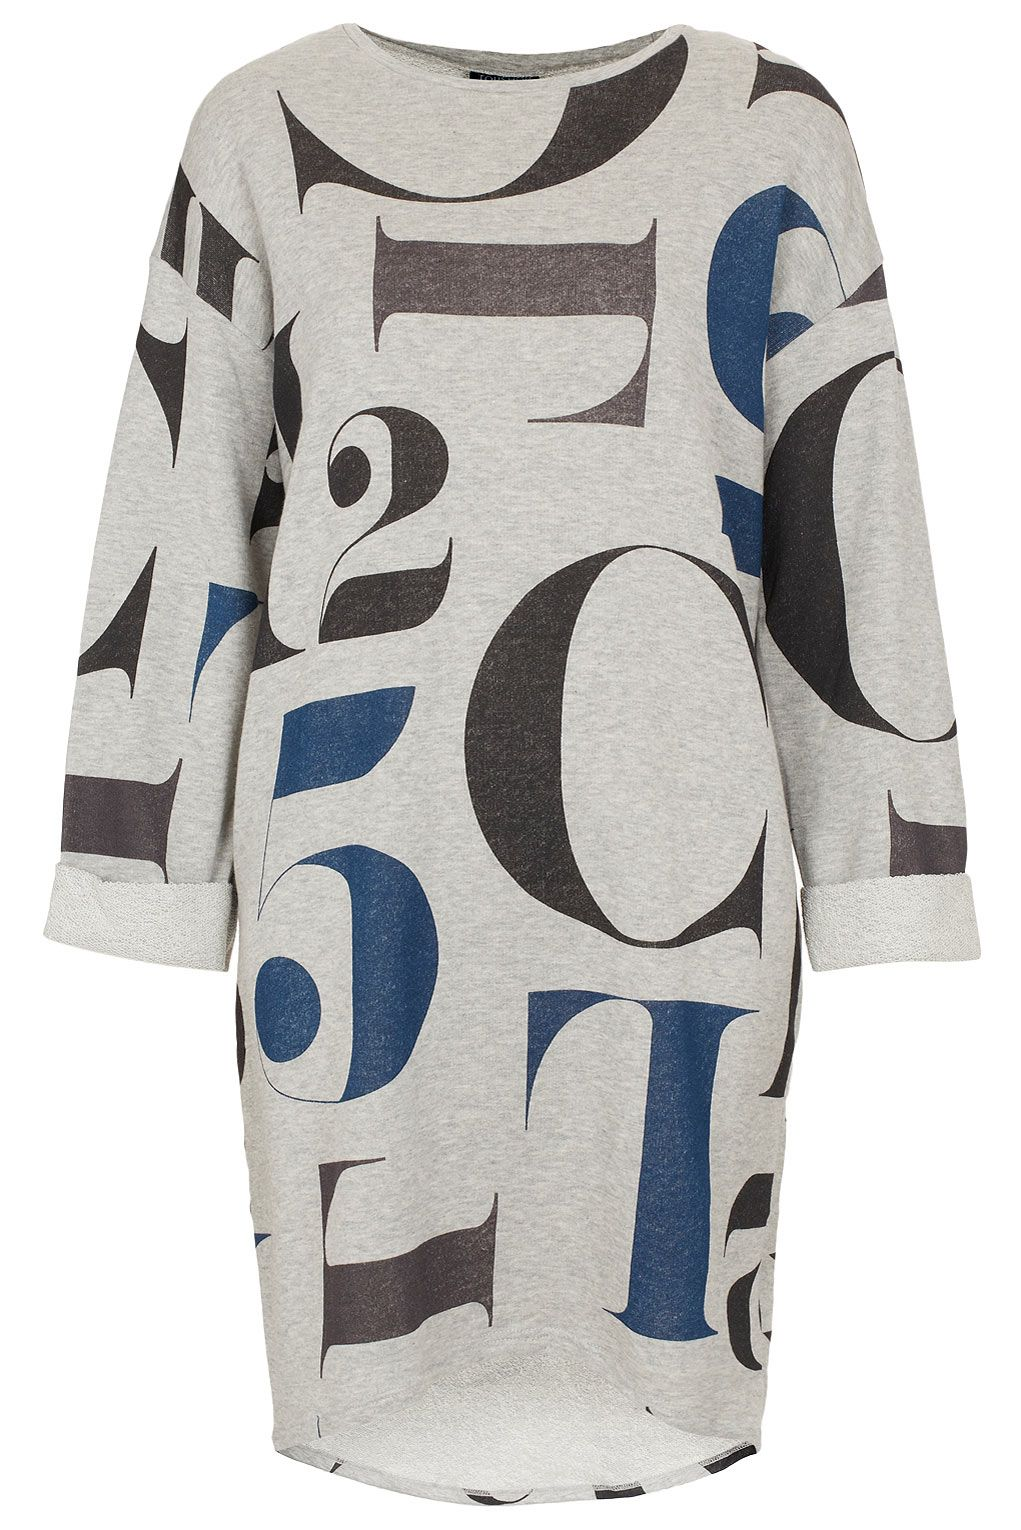 Letter Print Sweat Dress - Dresses - Clothing - Topshop